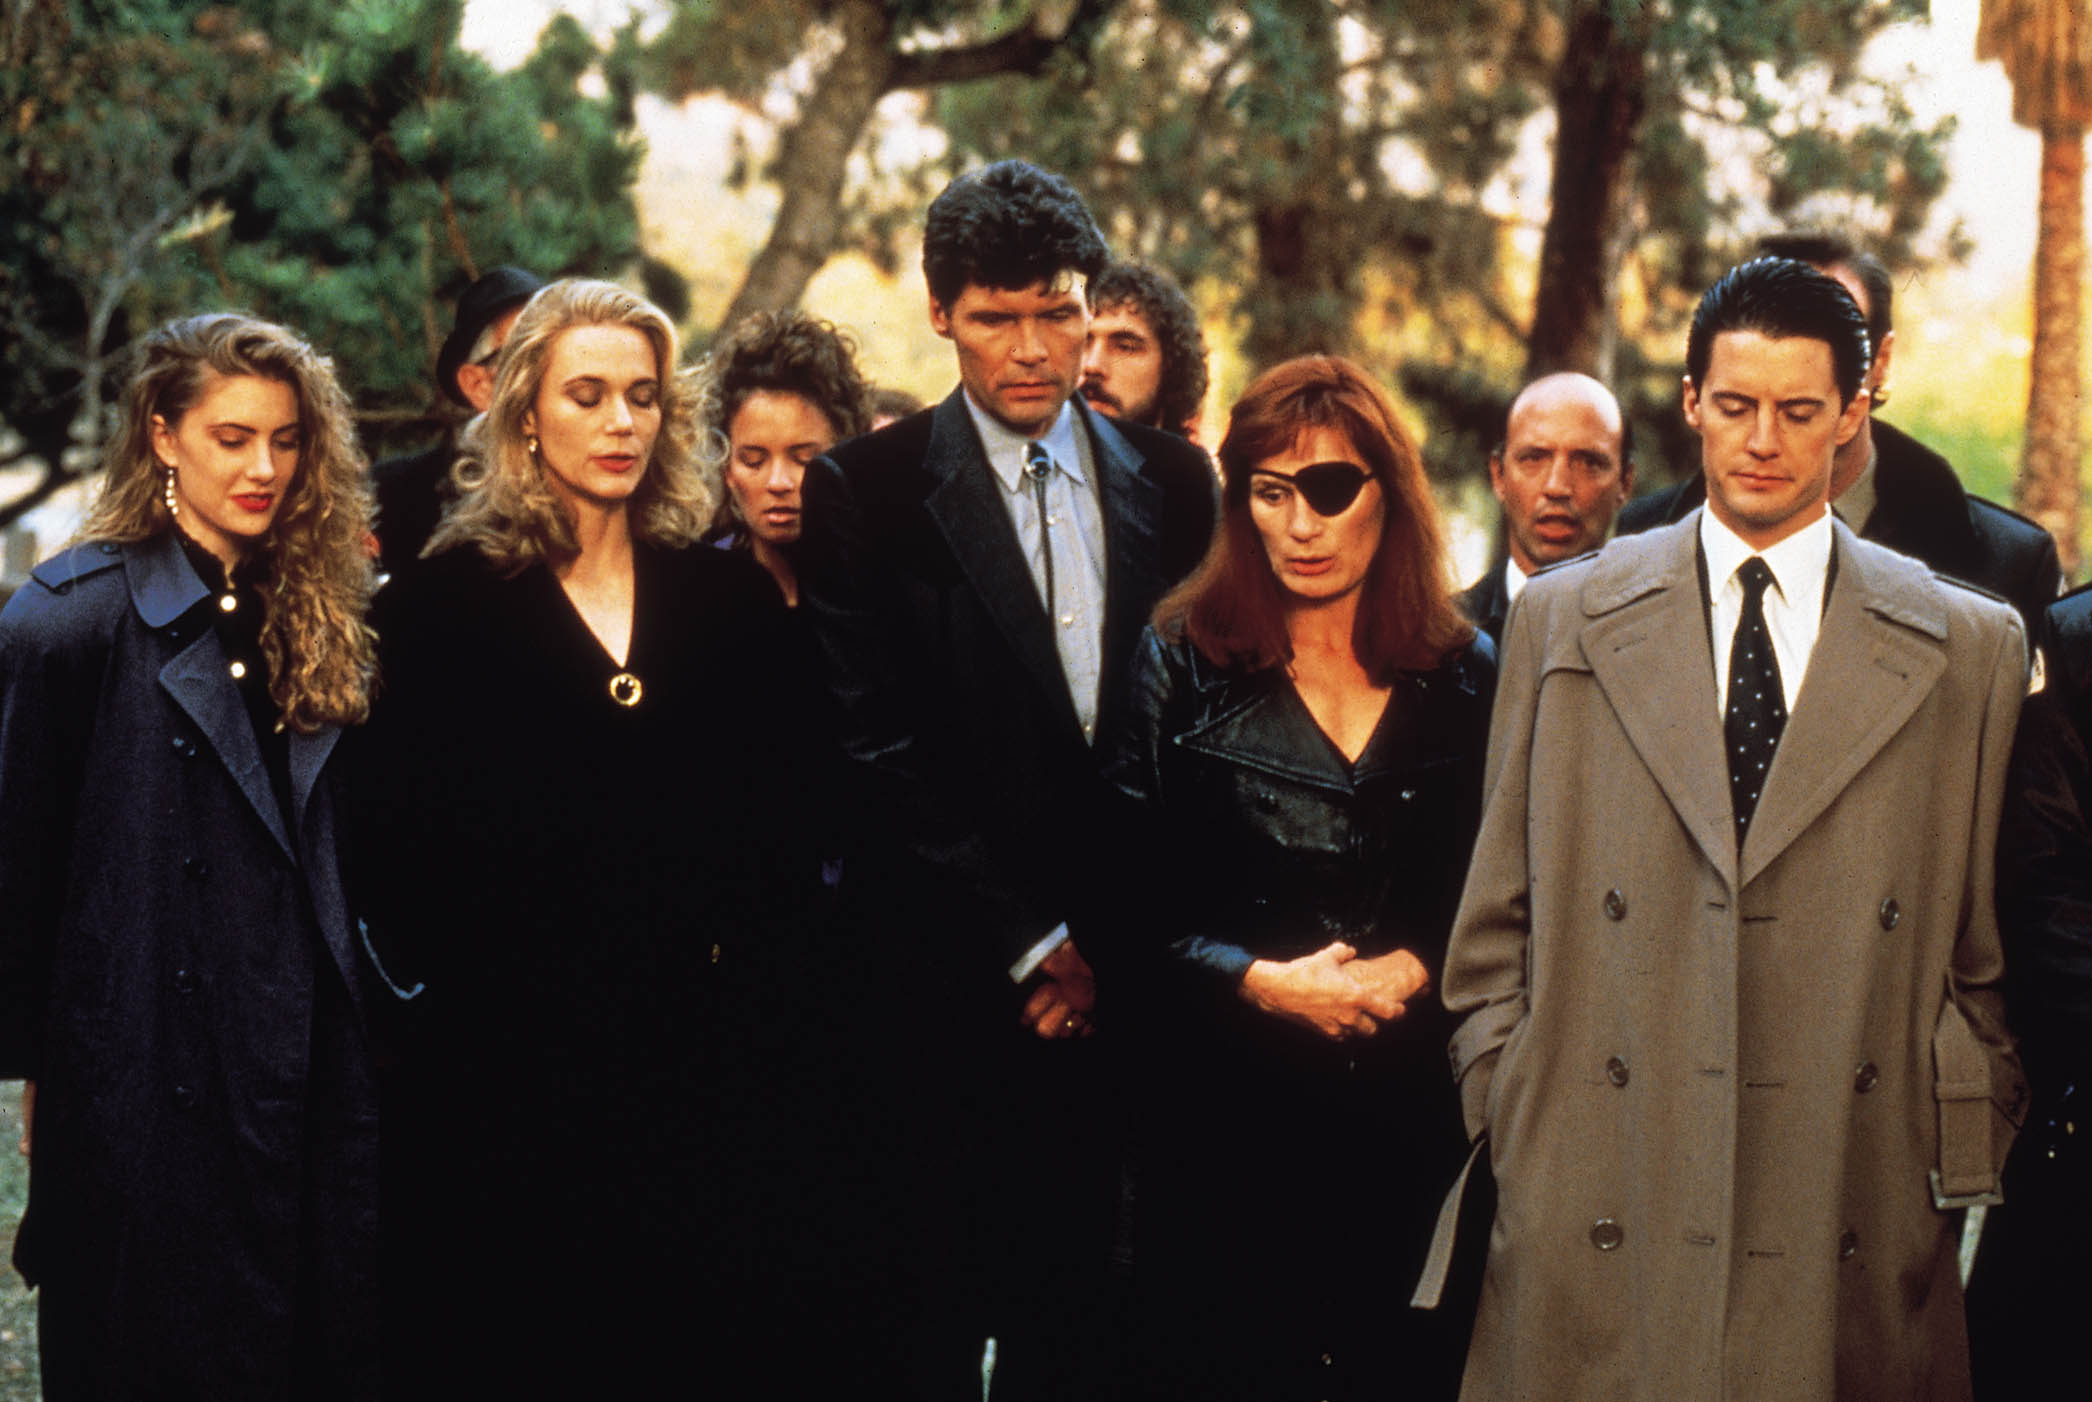 Who's who in the new Twin Peaks? Who's returning to the show?